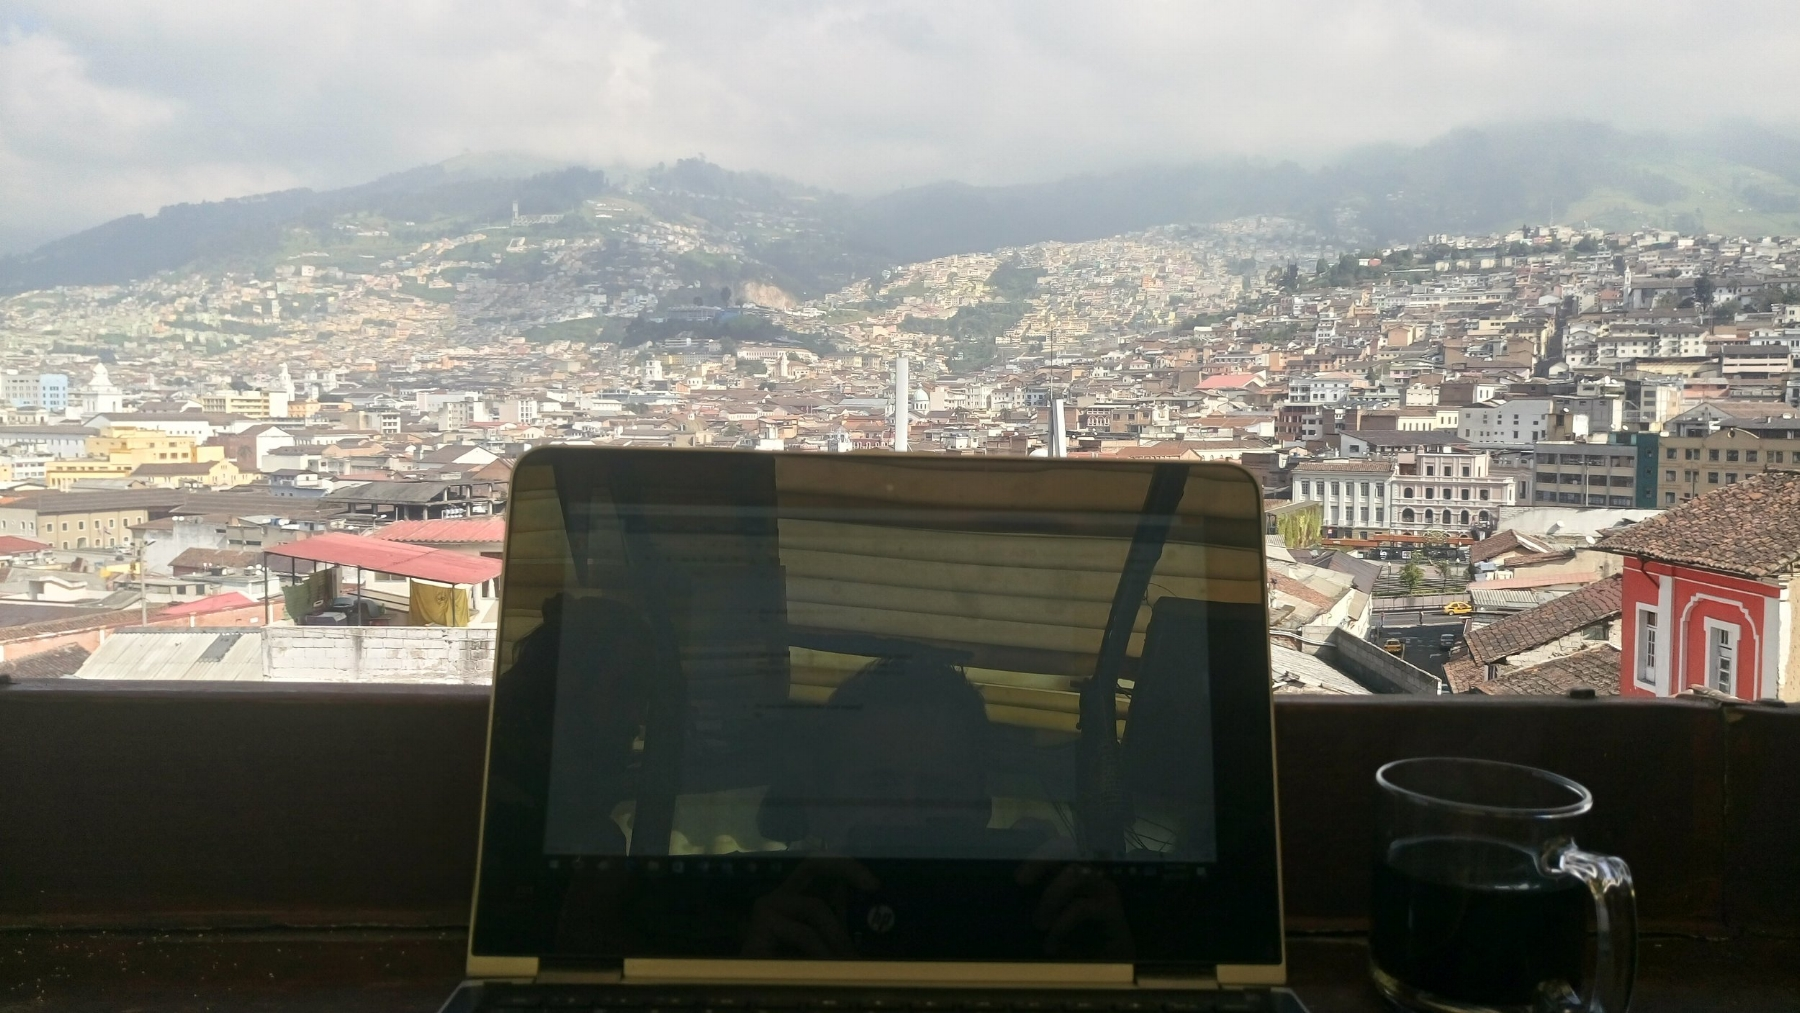 Overlooking Quito, Ecuador